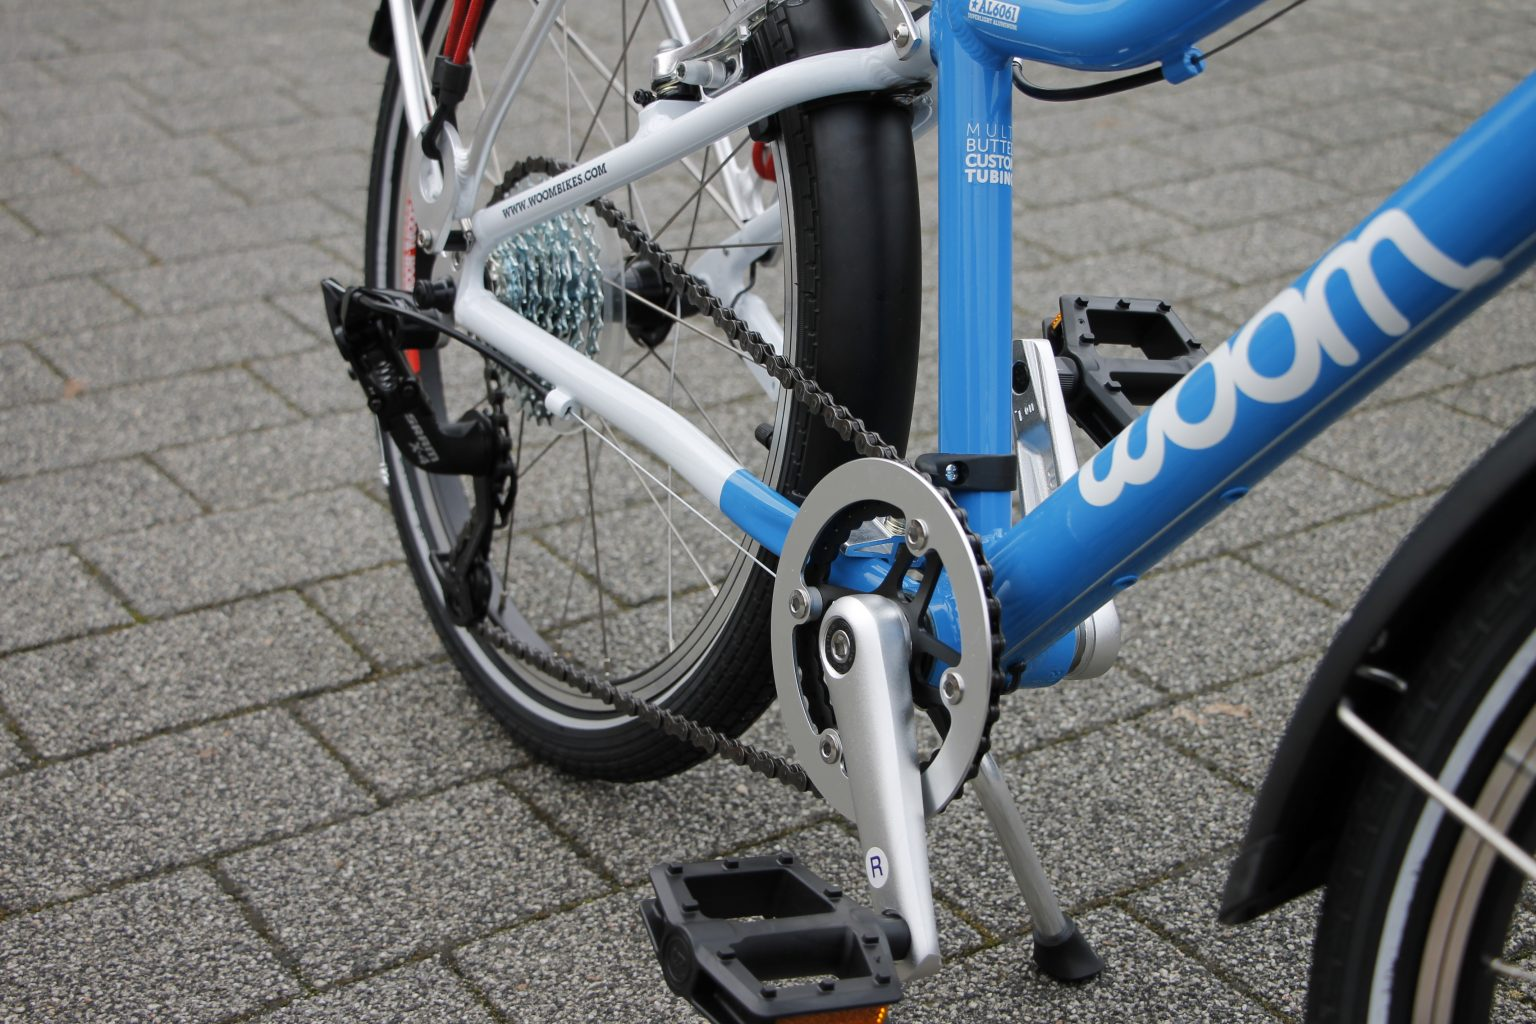 woombikes woom 4 City